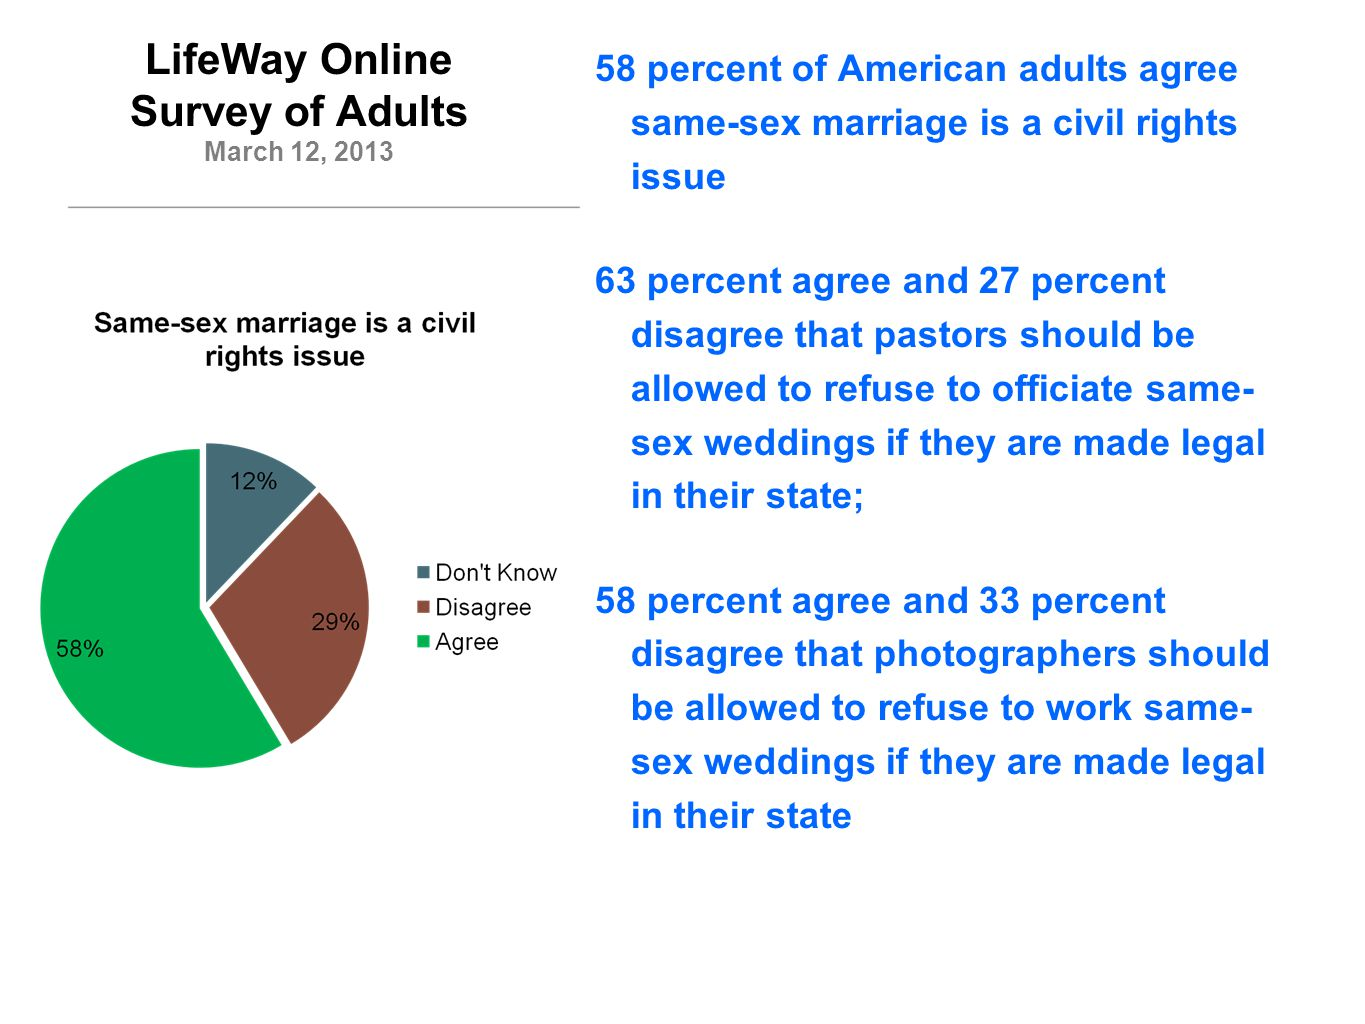 LifeWay Online Survey of Adults March 12, 2013 40 percent agree and 52 percent disagree that rental halls should be allowed to refuse to rent out their facilities for same-sex weddings if they are made legal in their state; 27 percent agree and 67 percent disagree landlords should be allowed to refuse to rent housing to same-sex couples if same-sex marriage is made legal in their state; 14 percent agree and 82 percent disagree employers should be allowed to refuse employment to someone based on their sexual preference.